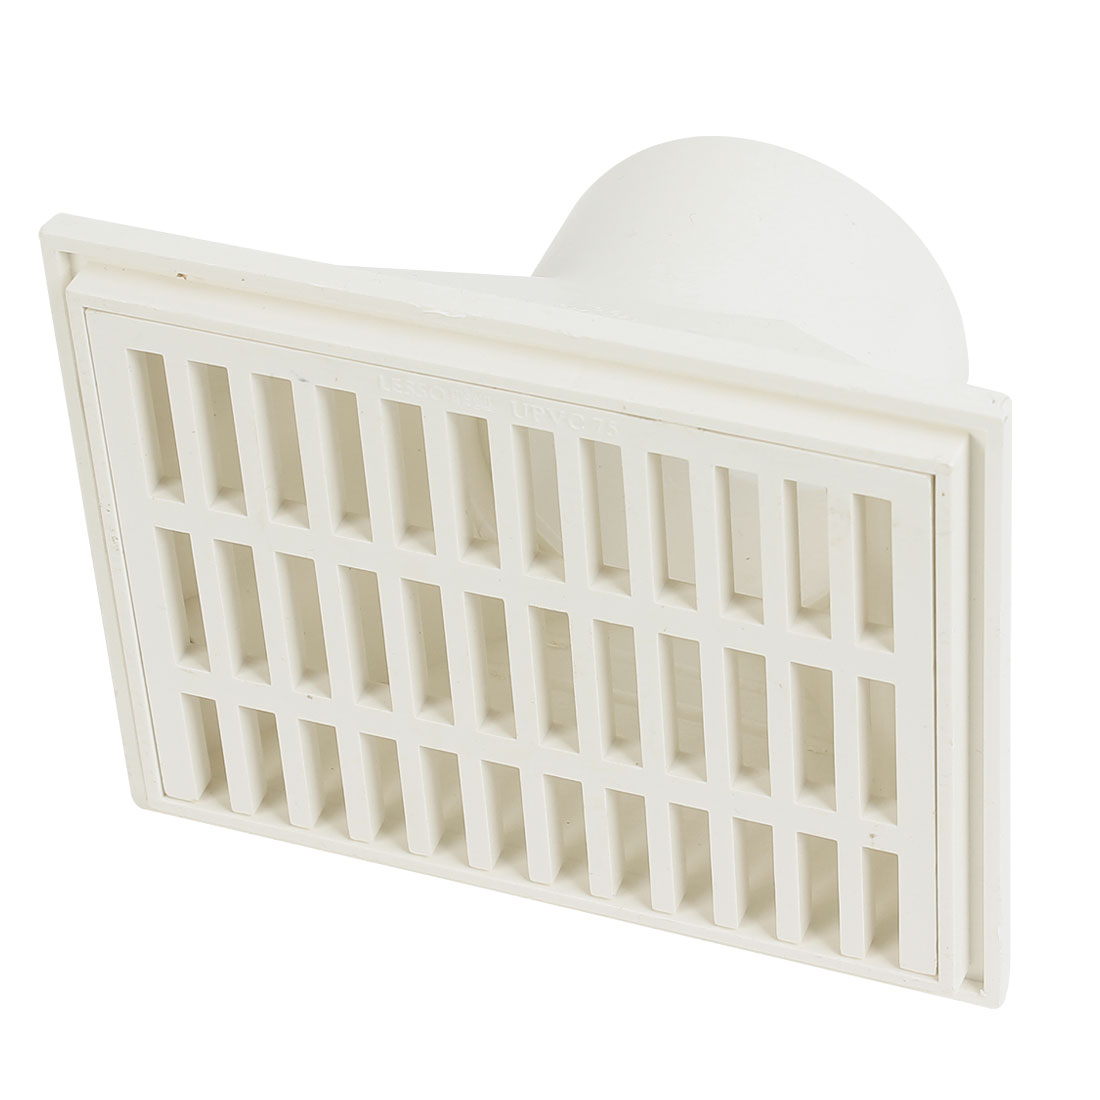 "3"" Dia Hole White PVC Wall Side Floor Drain Strainer Cover 16cm x 12.5cm"